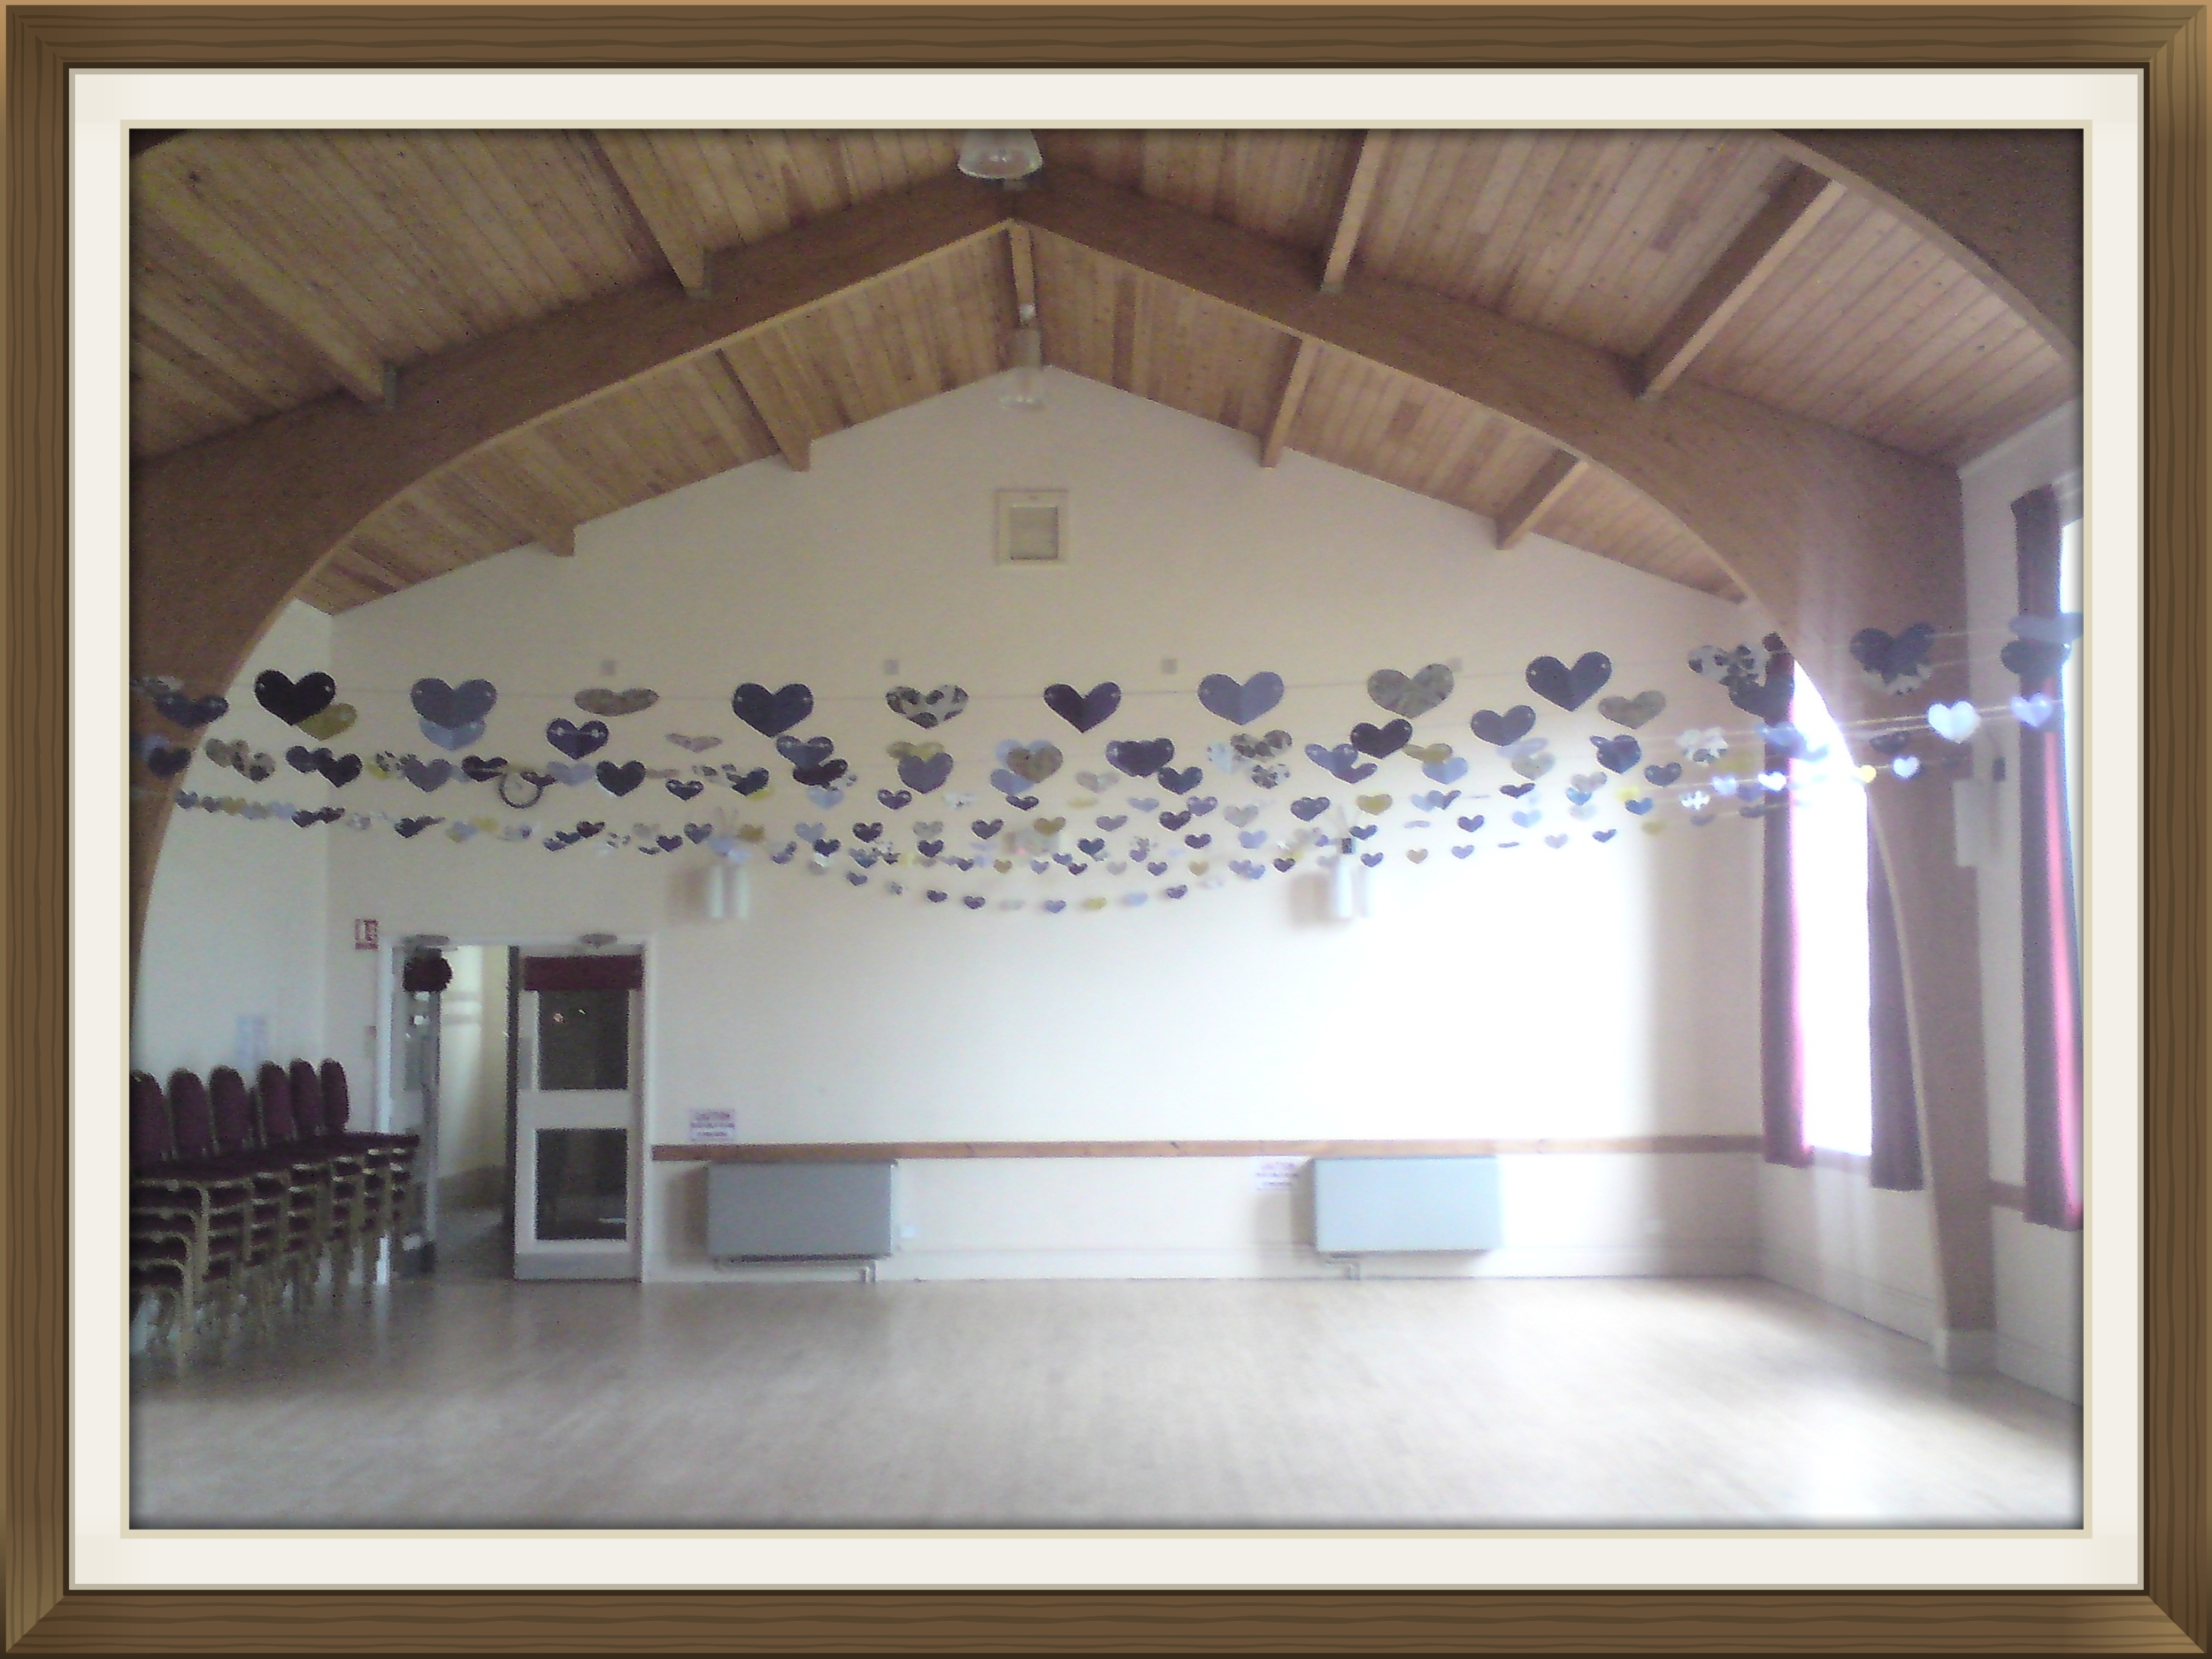 Village hall large room party venue